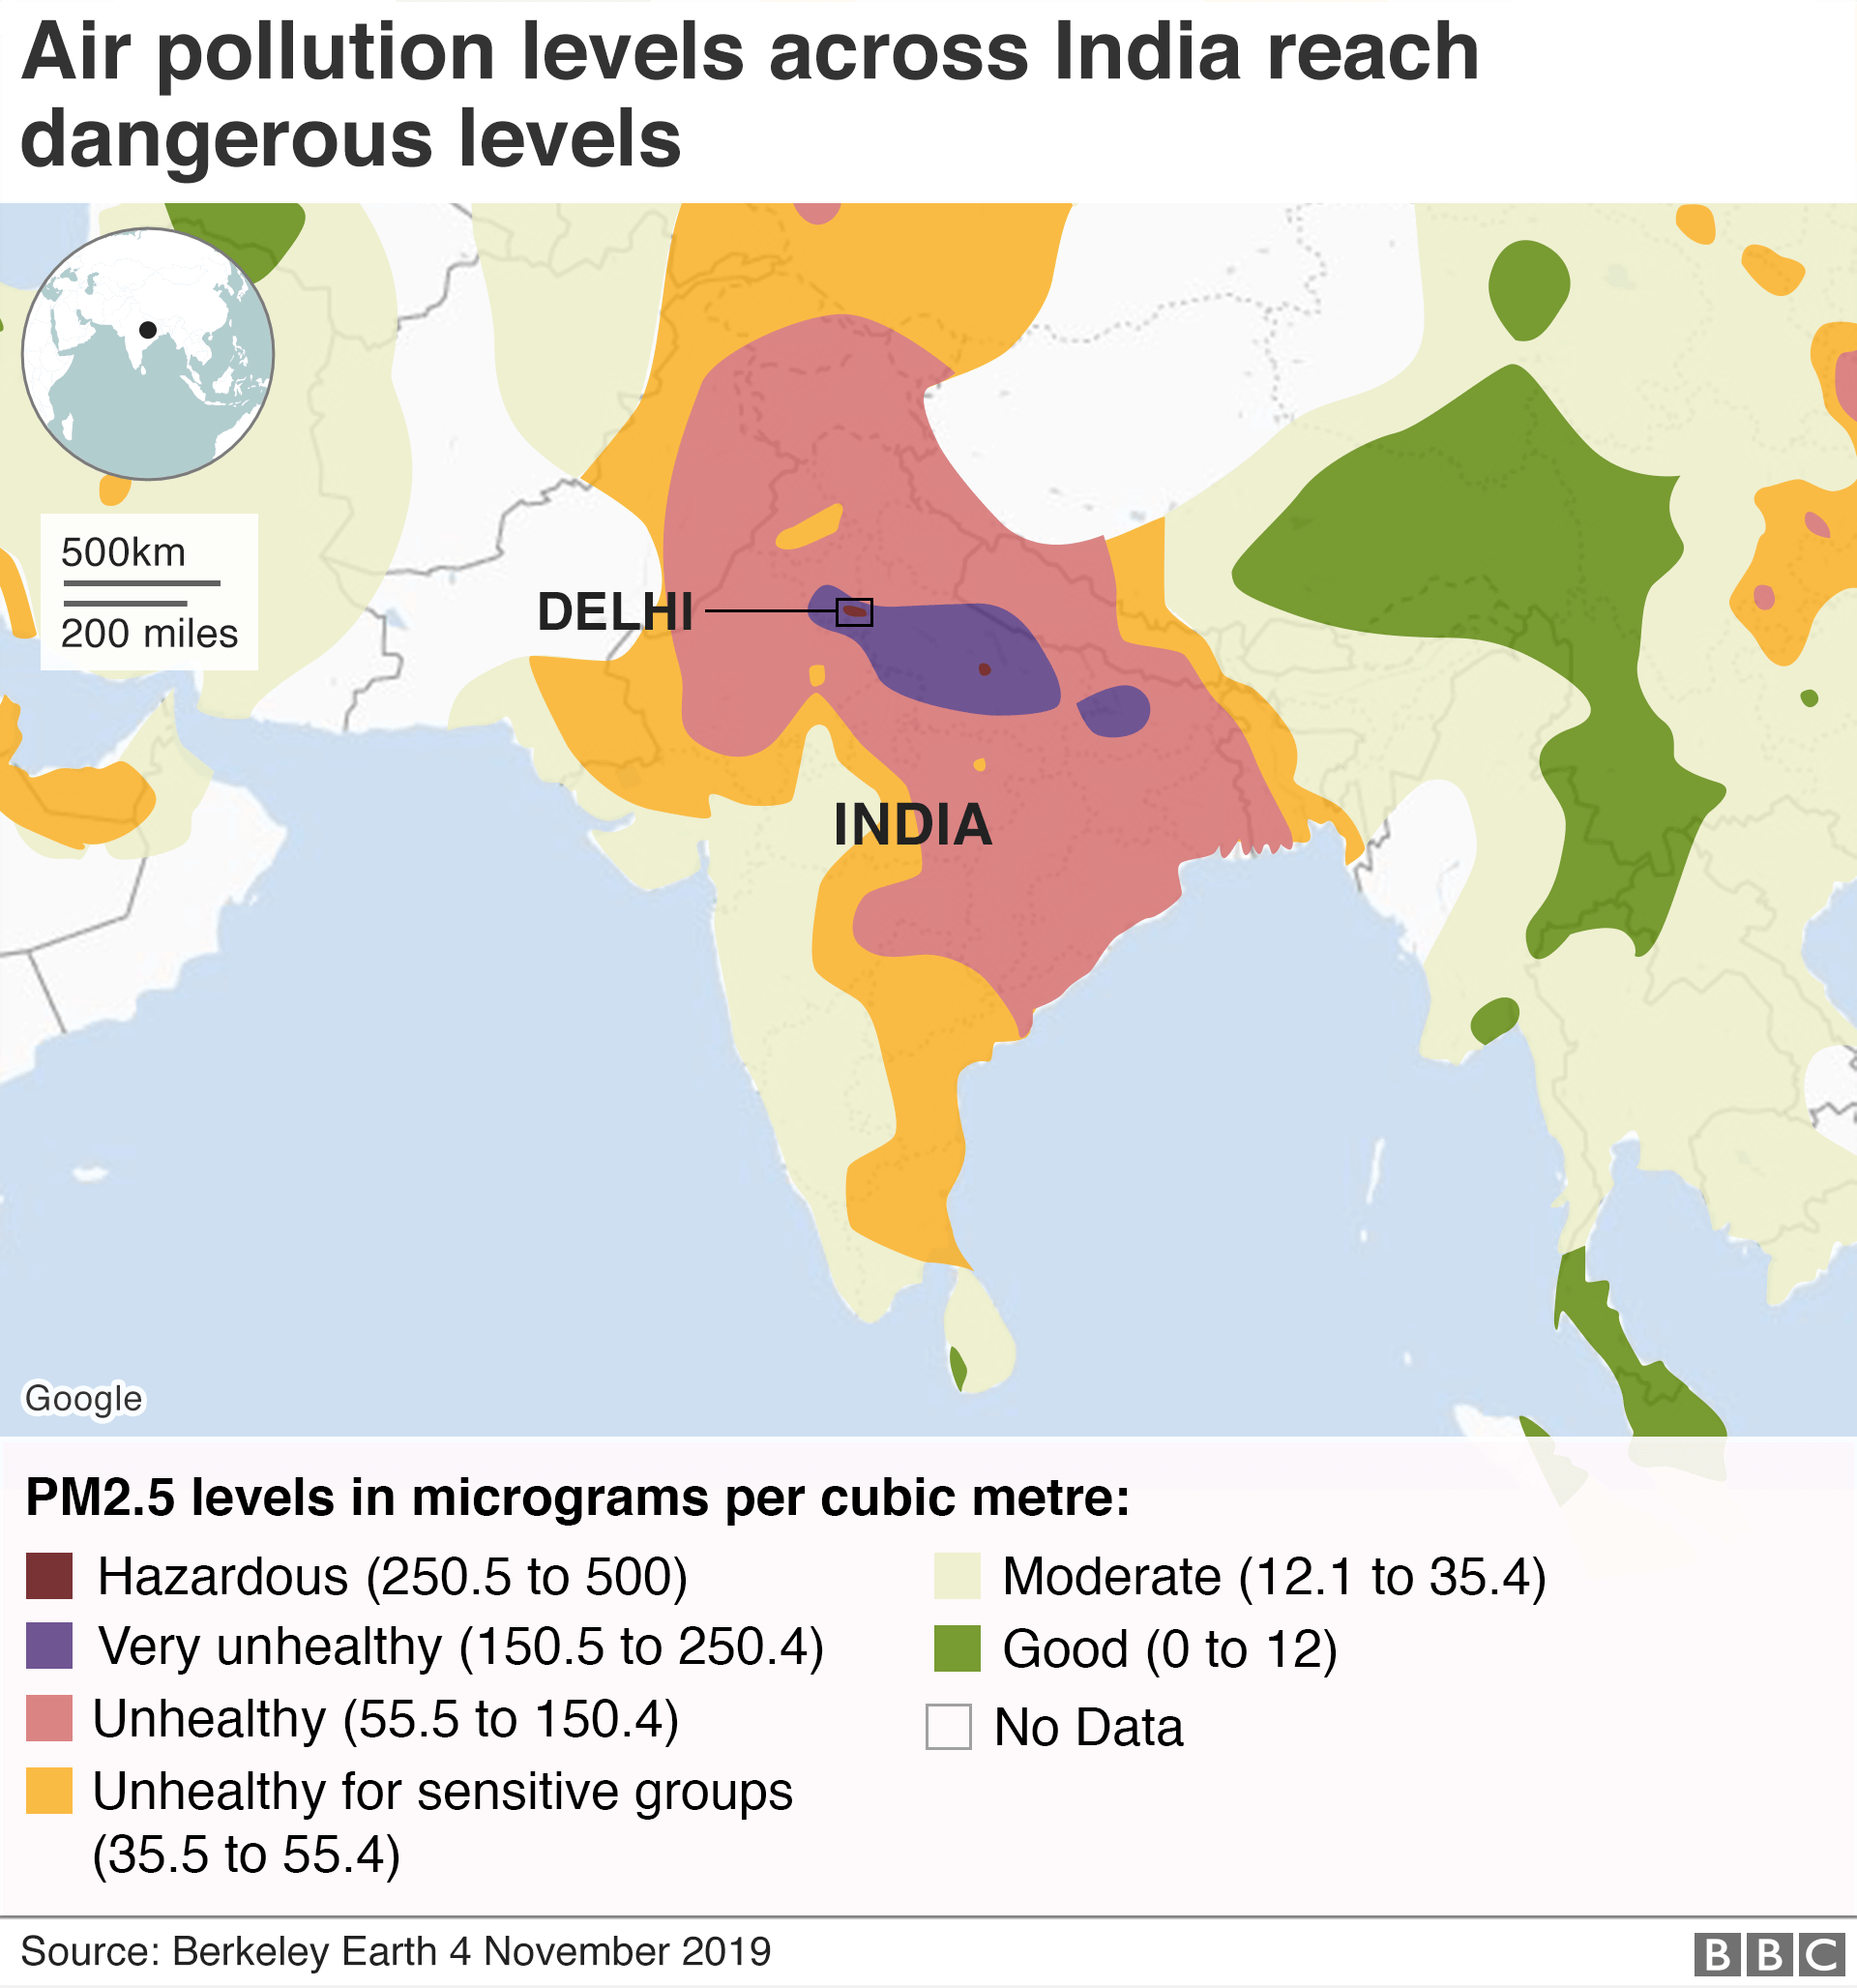 Thick Smog in Delhi and La: Is India Crop Burning to ... on goa map, islamabad map, gurgaon map, haryana map, vizag map, los angeles map, madras map, mumbai map, kolkata map, moscow map, karachi map, india map, agra map, indian subcontinent map, malacca map, hong kong map, deccan plateau map, gujarat map, vasant vihar map, dhaka map,